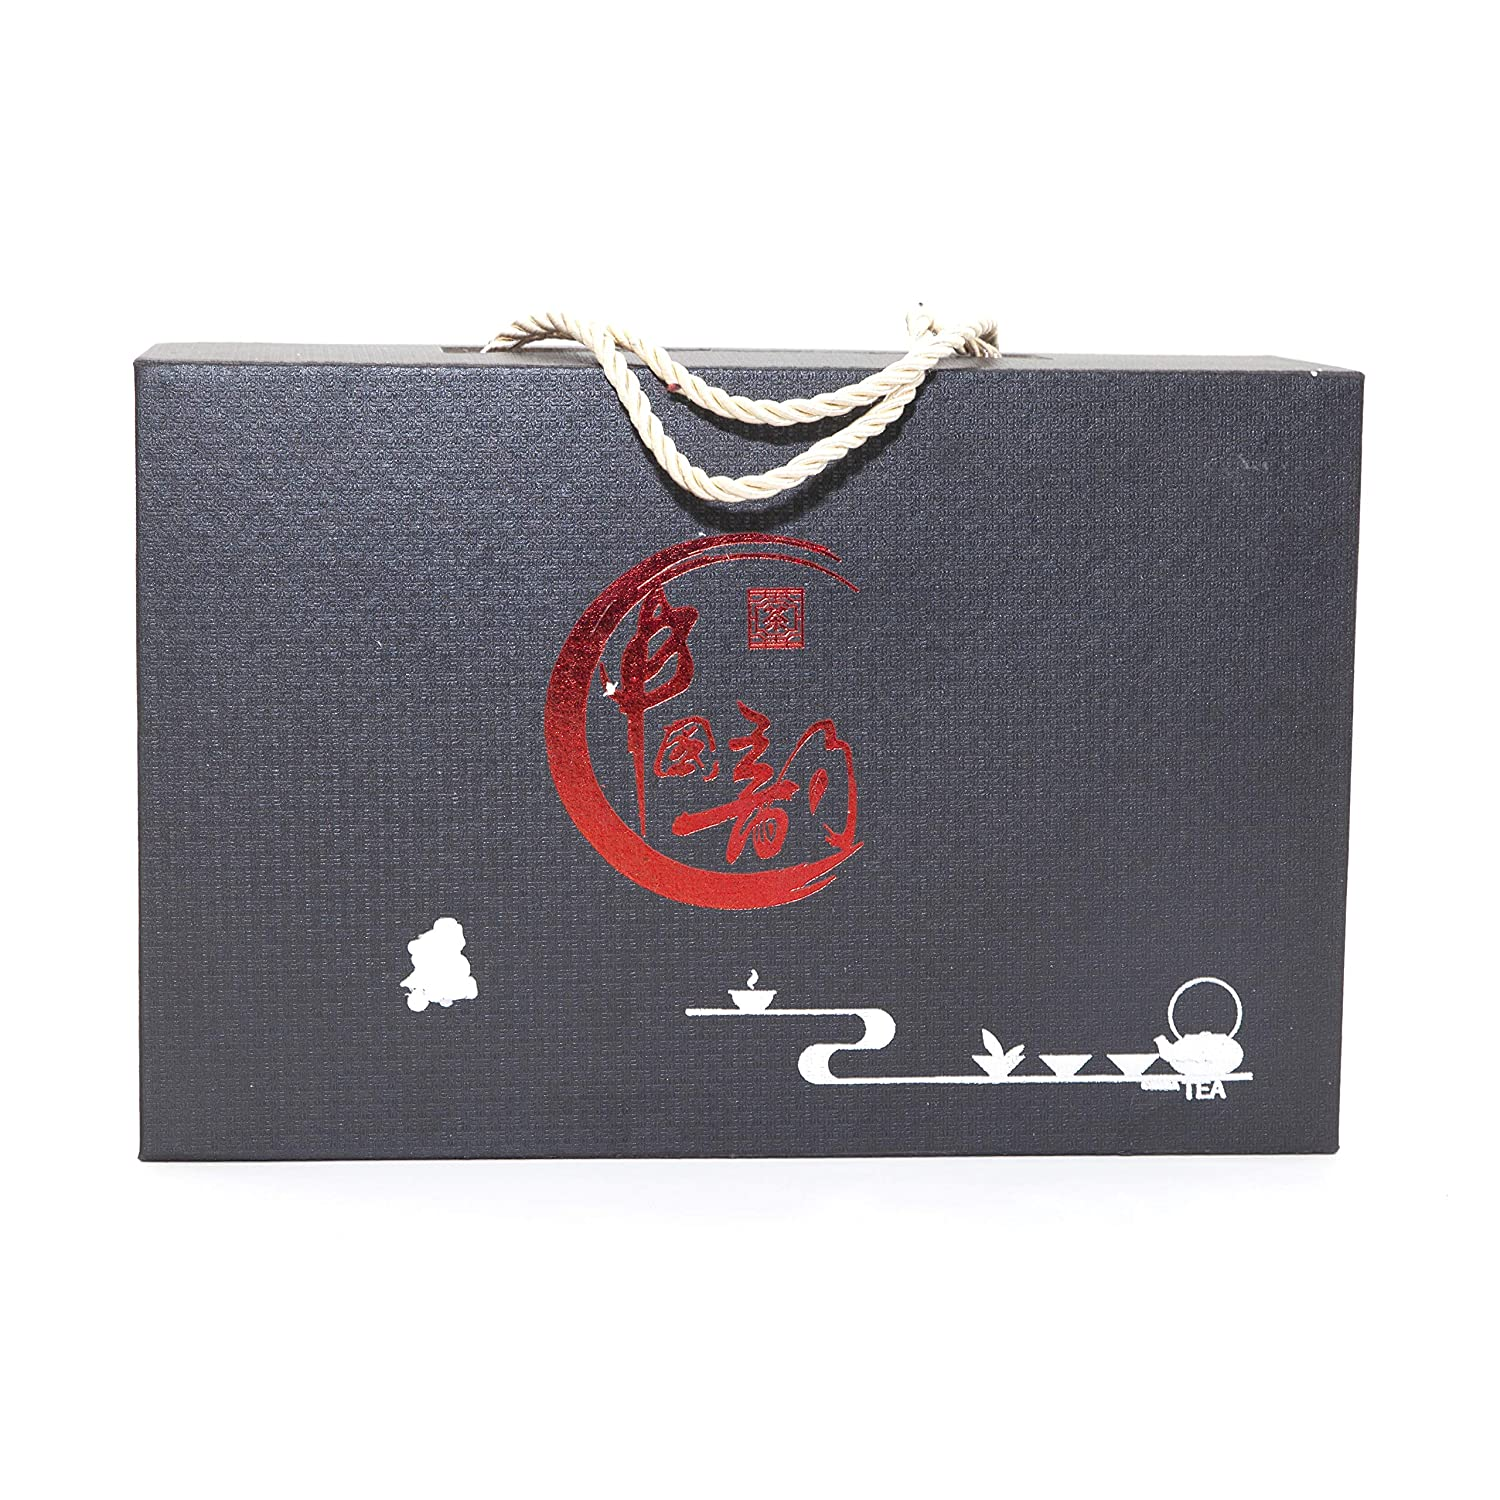 NEWQZ Japanese Sake Set with a Gift Box Traditional Ceramics Black Sake Sets 1 Pot and 6 Cups